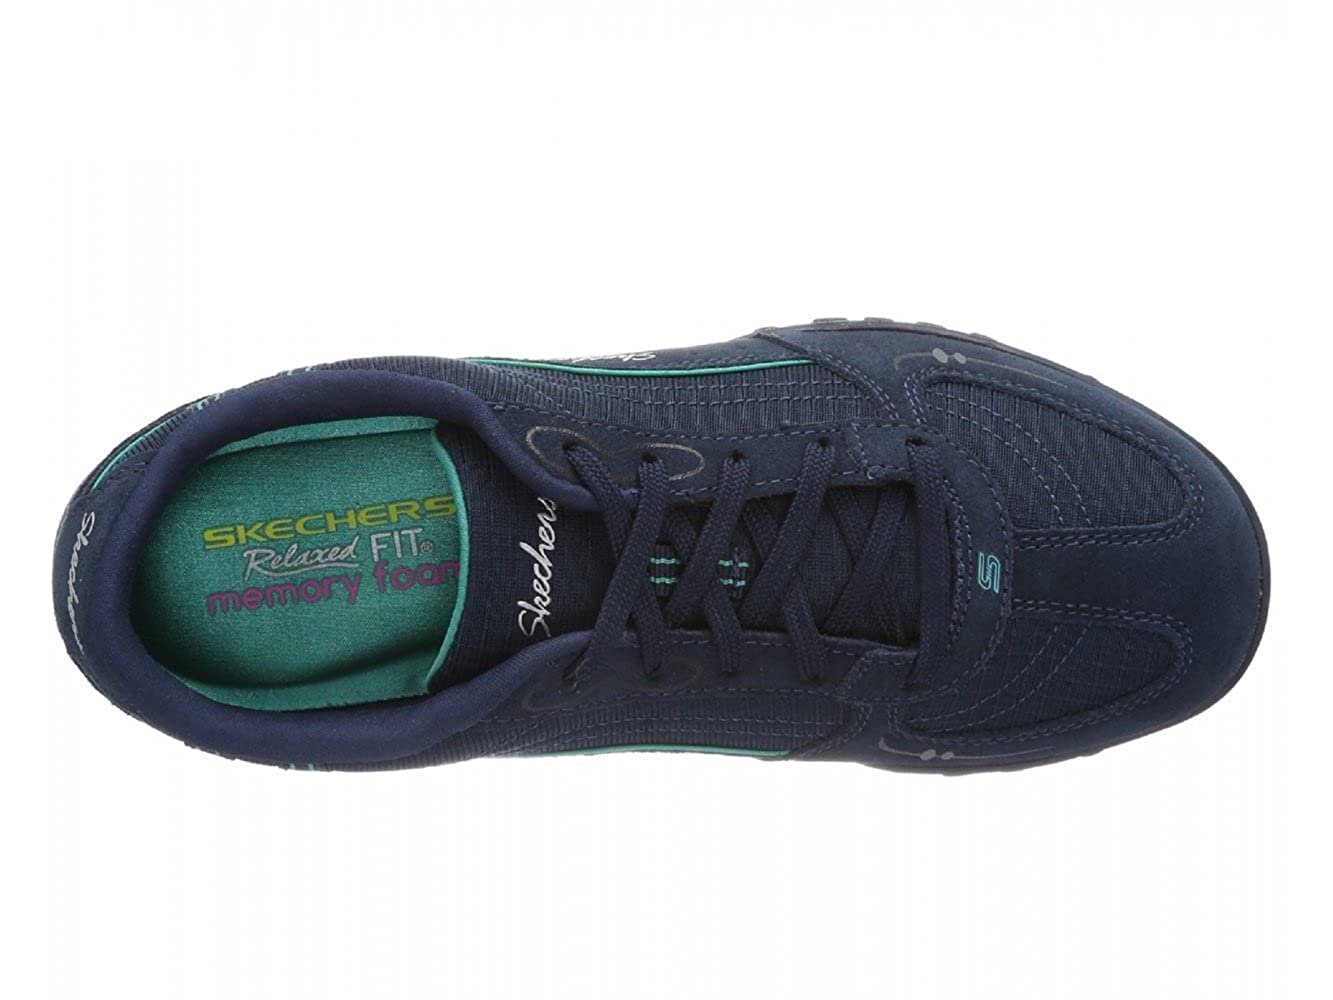 b23abdd5a3d7 Skechers BREATHE EASY JUST RELAX Ladies Wide Fit Trainers Navy Aqua UK 4   Amazon.co.uk  Shoes   Bags